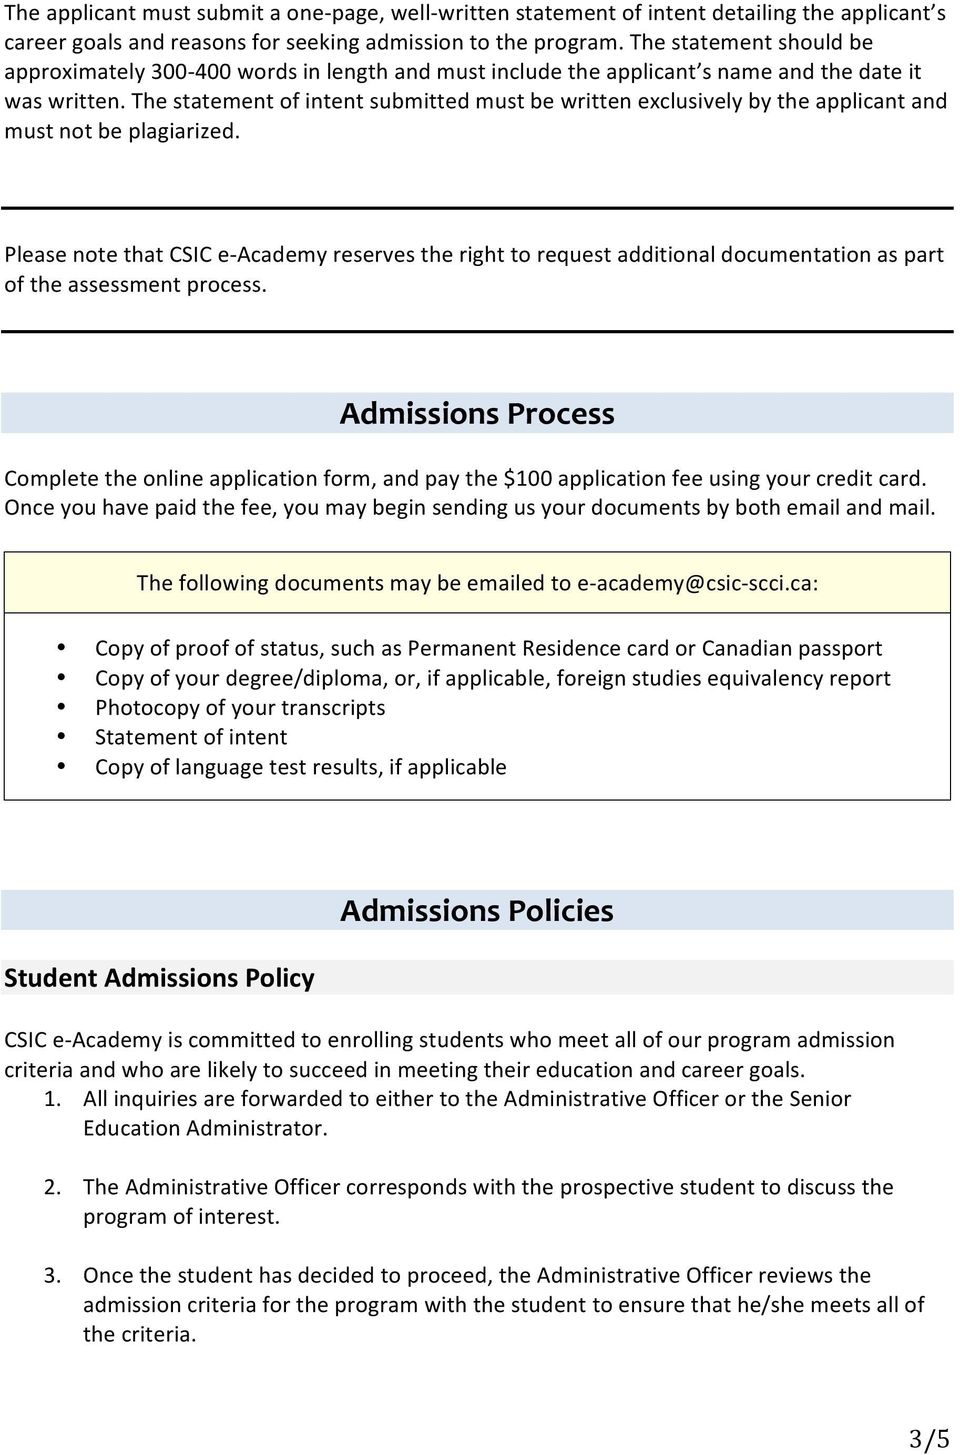 online immigration consultant certificate program pdf the statement of intent submitted must be written exclusively by the applicant and must not be